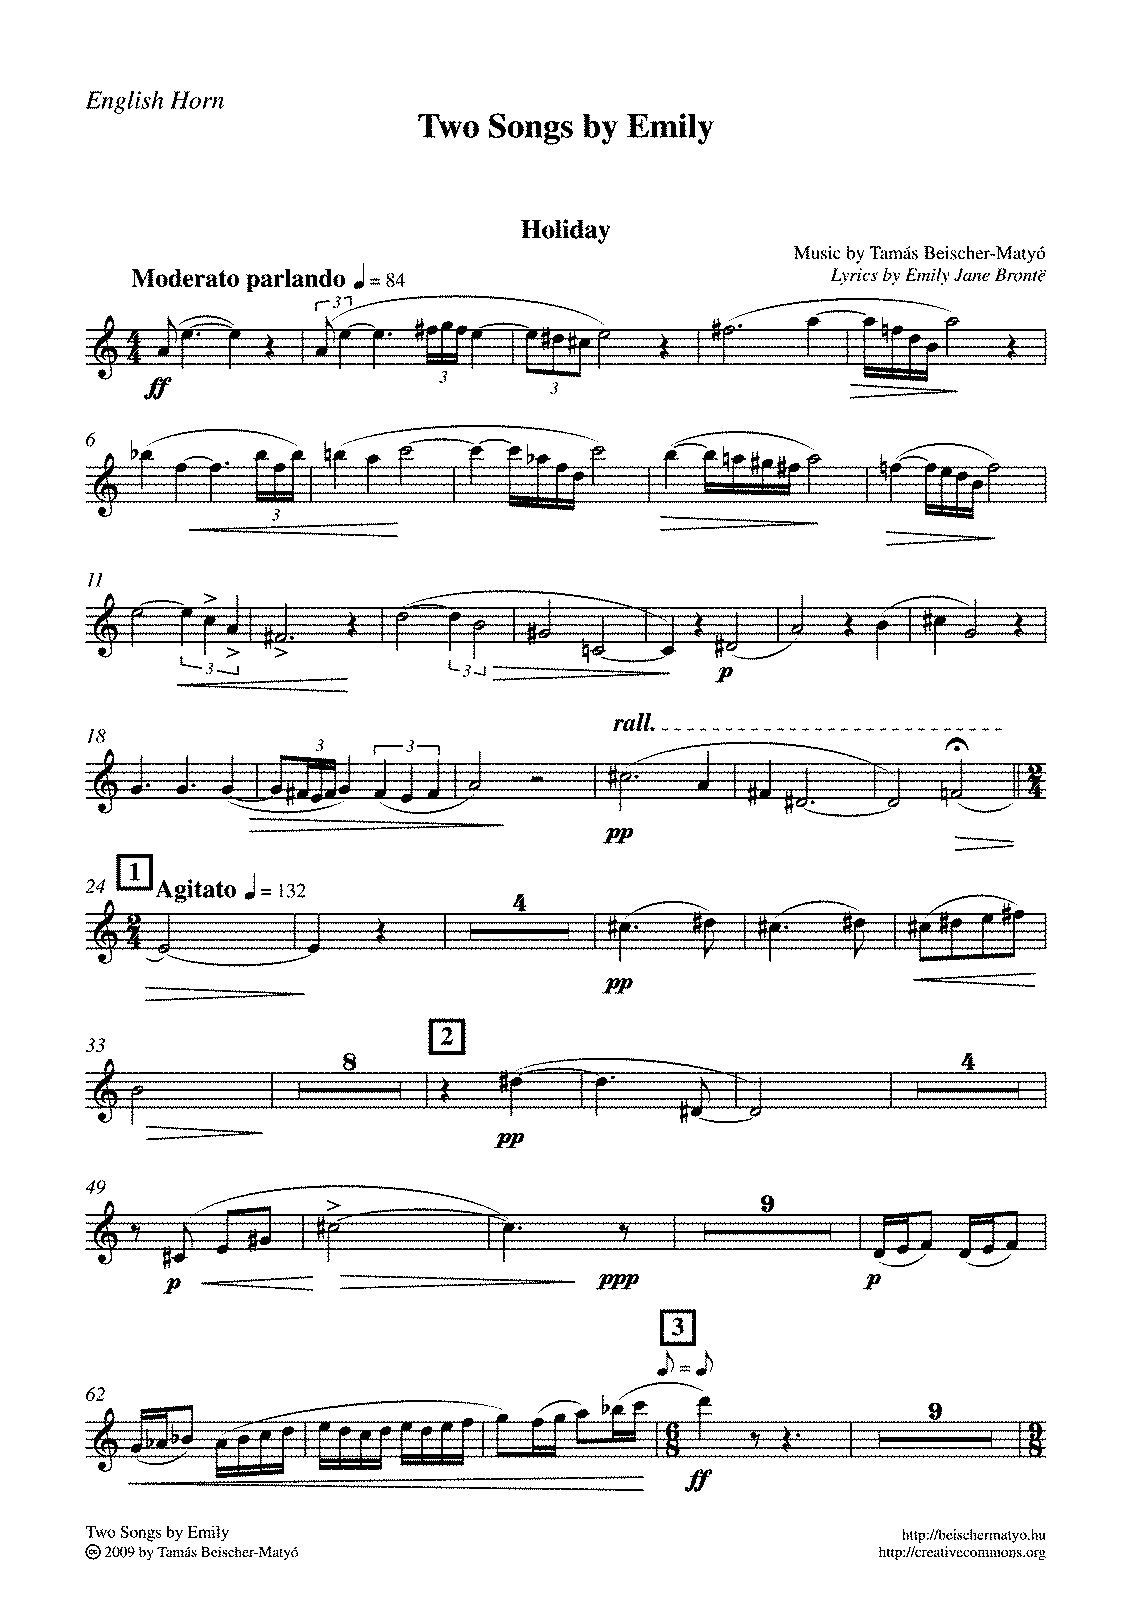 PMLP139522-Two Songs by Emily - English Horn.pdf